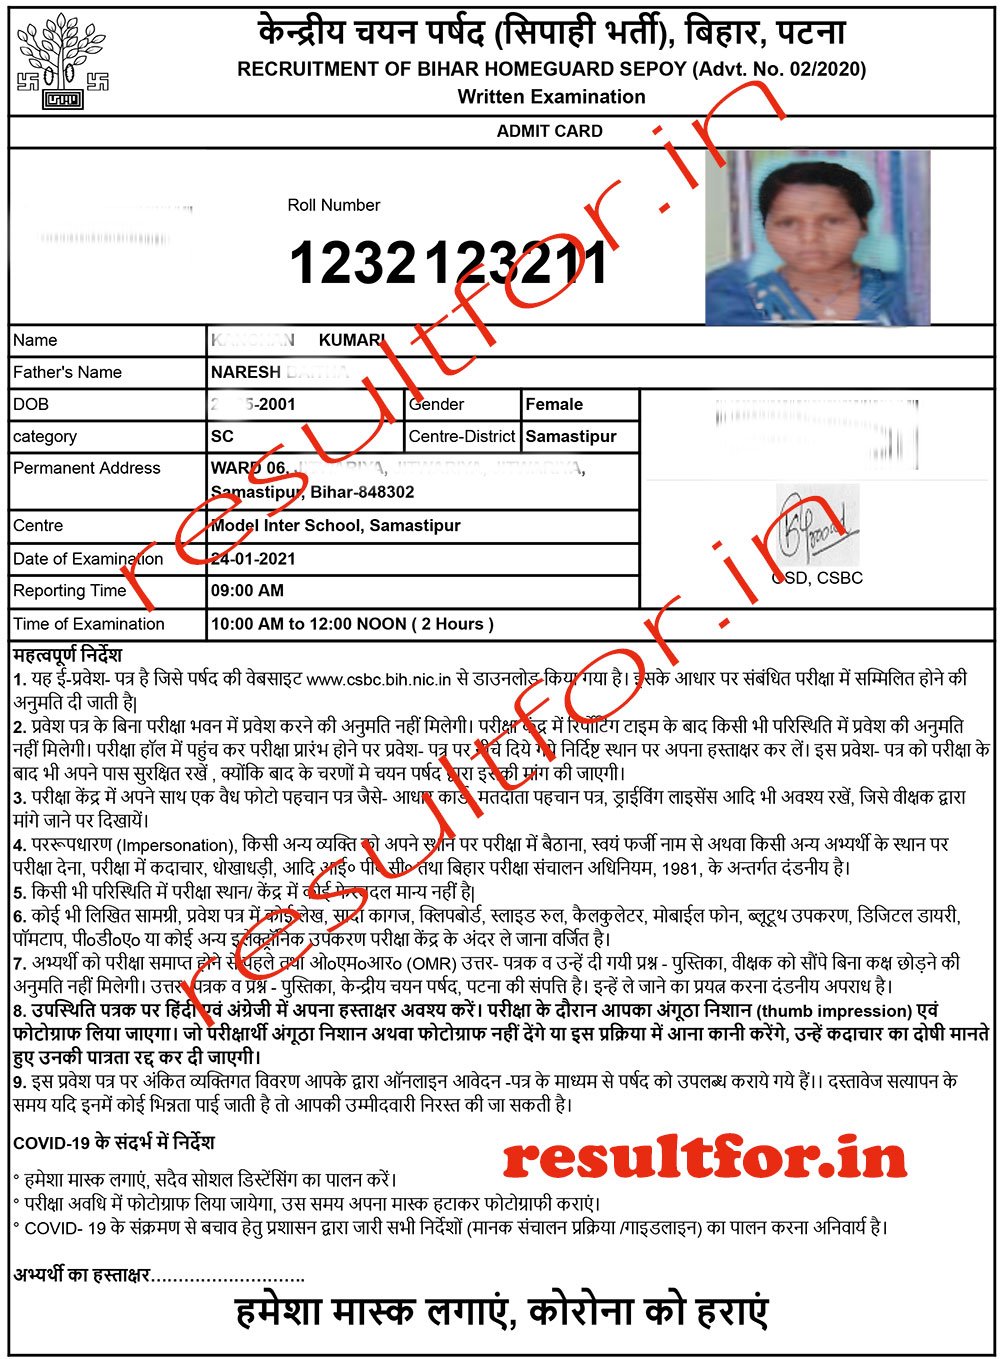 bihar police siphahi written exam admit card